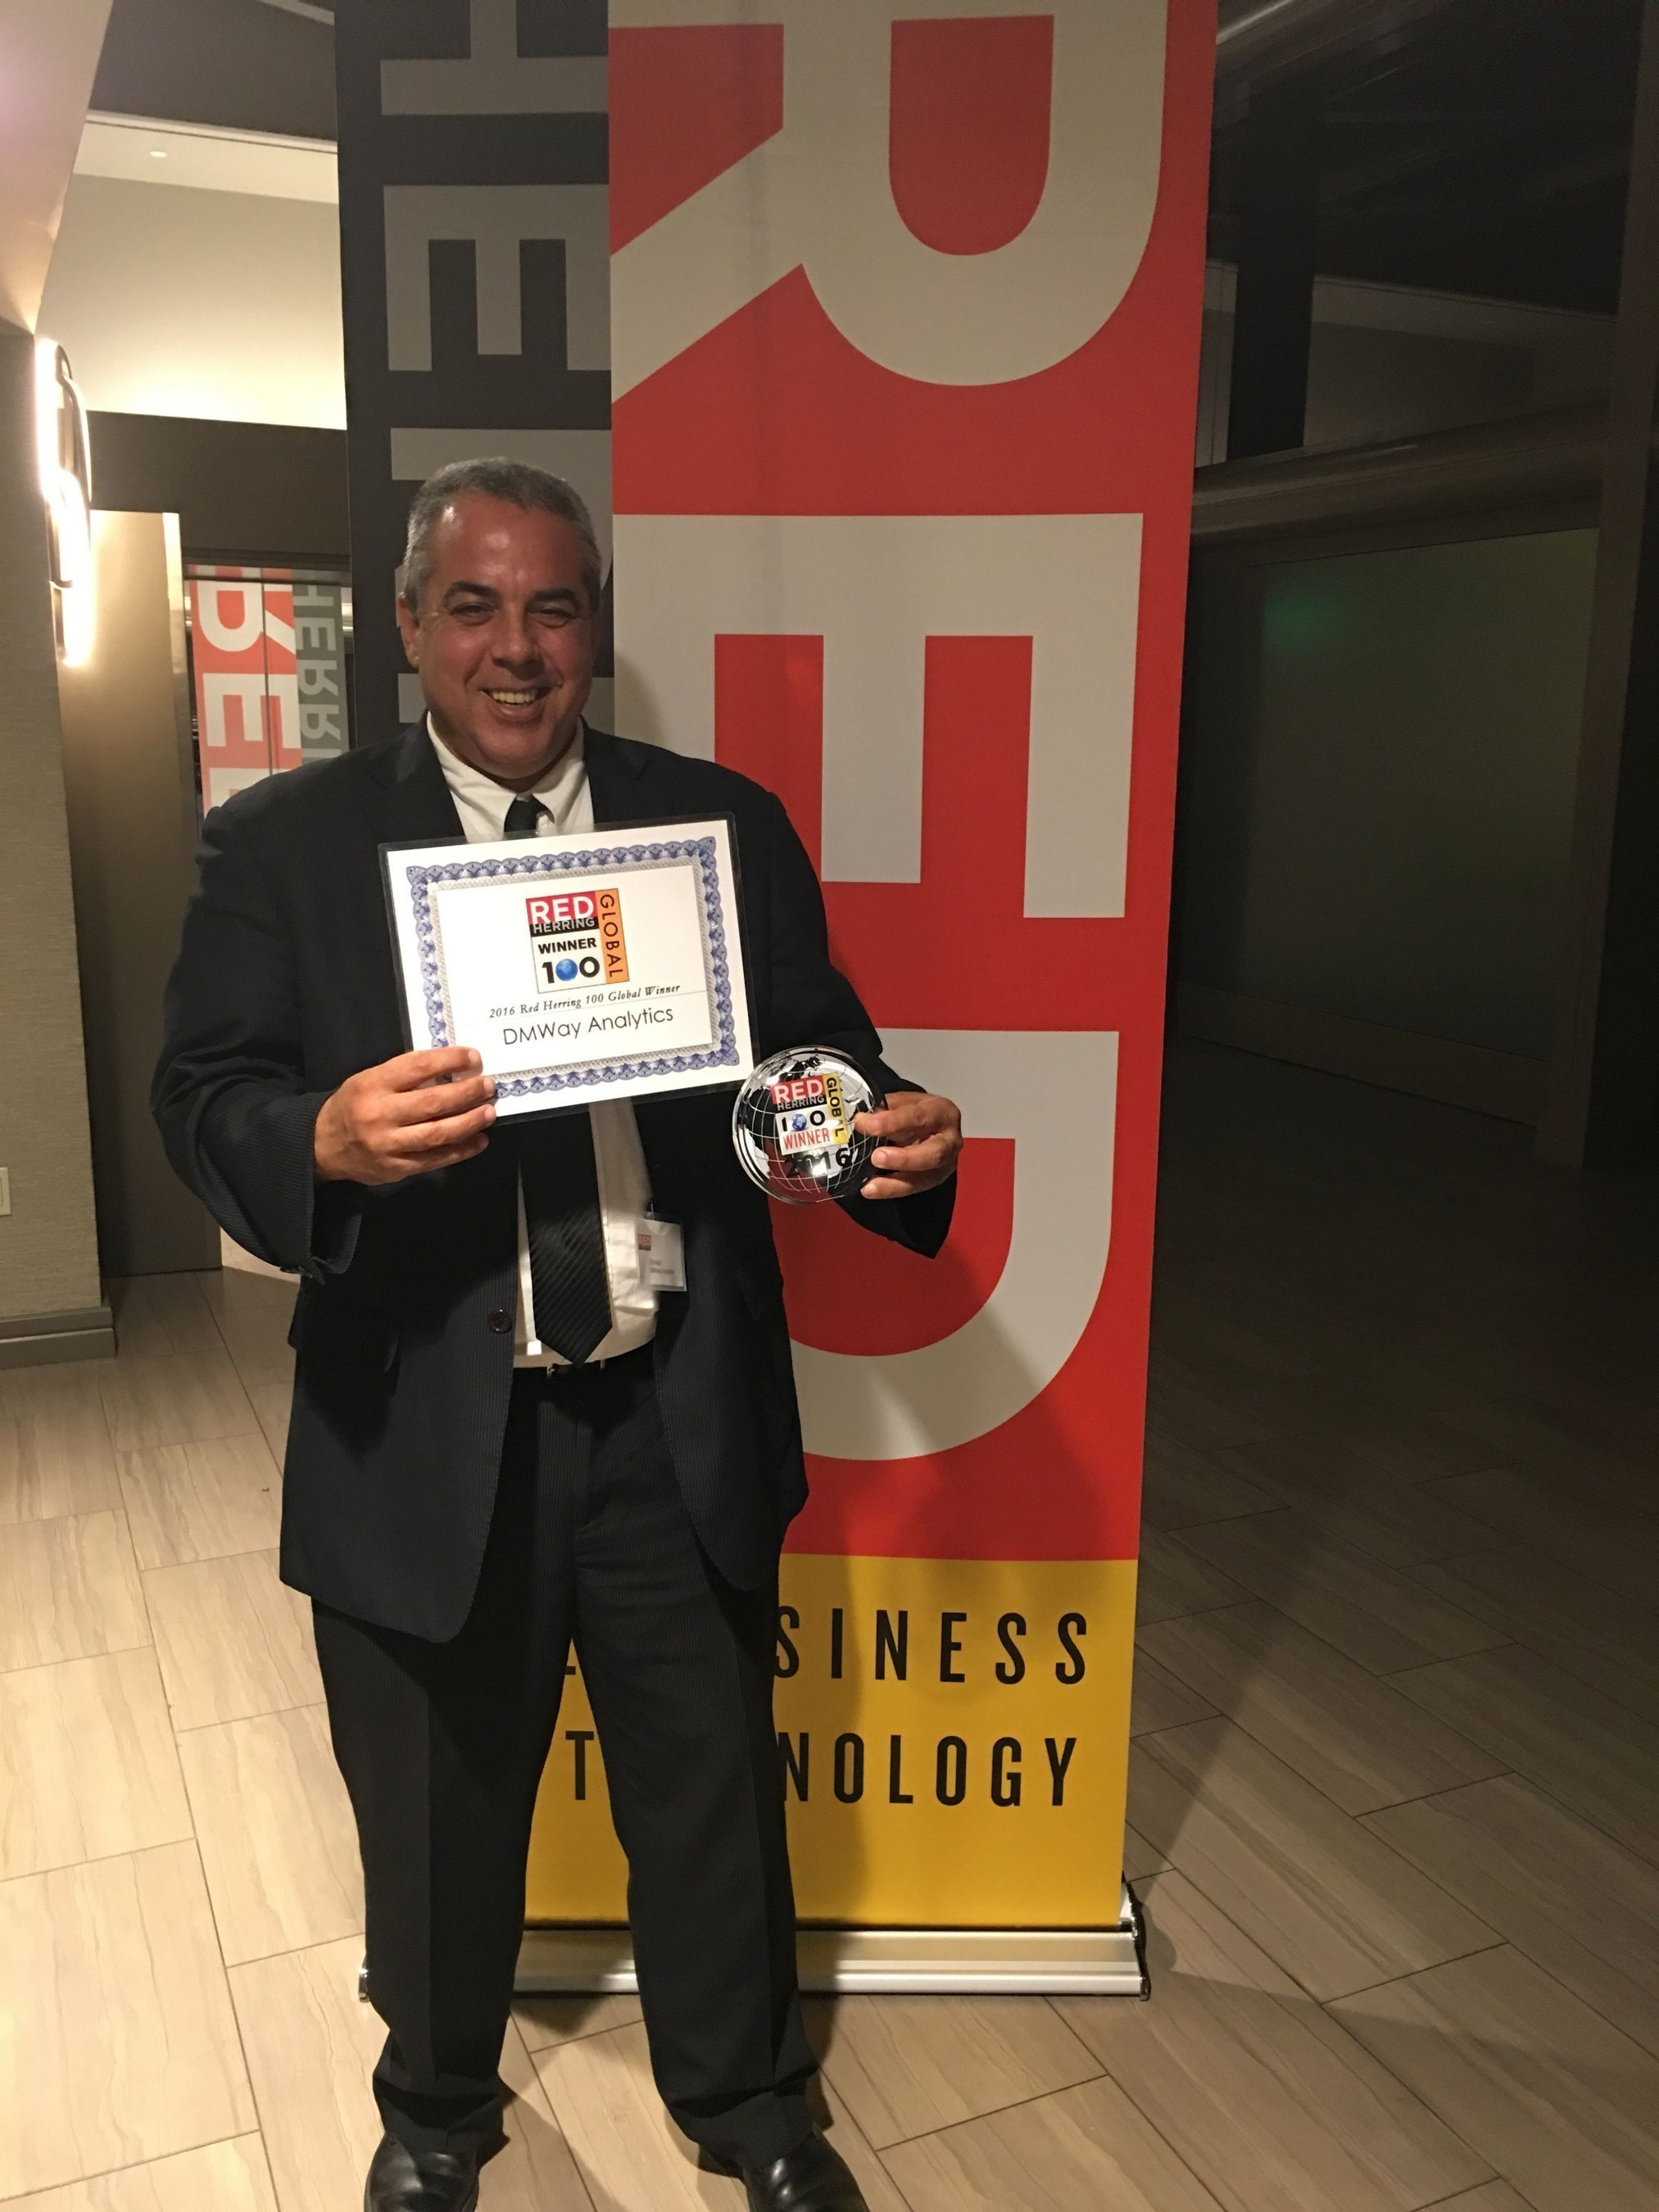 Marina Del Rey, California, Gil Nizri, CEO of DMWay with the Red Herring Award